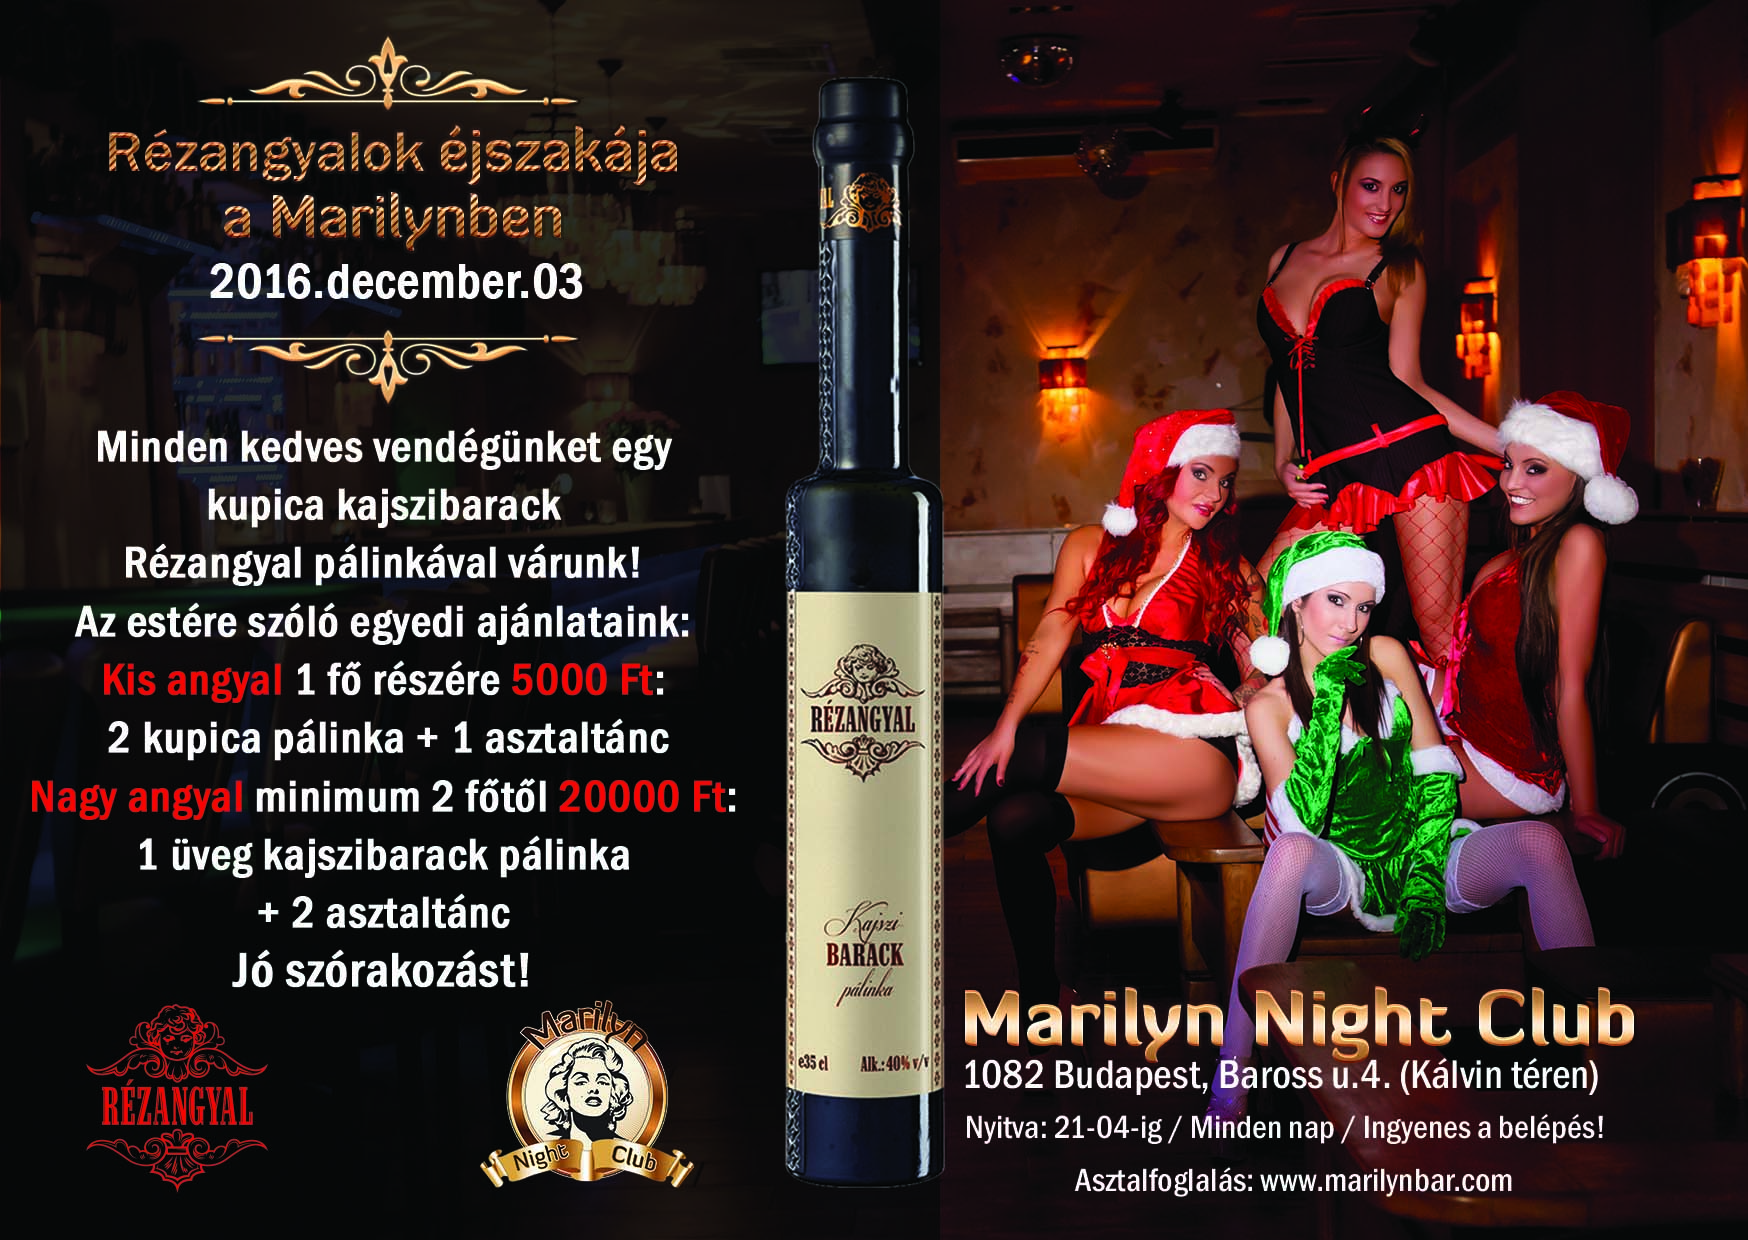 Rézangyal pálinka est a Marilyn Night Club-ban